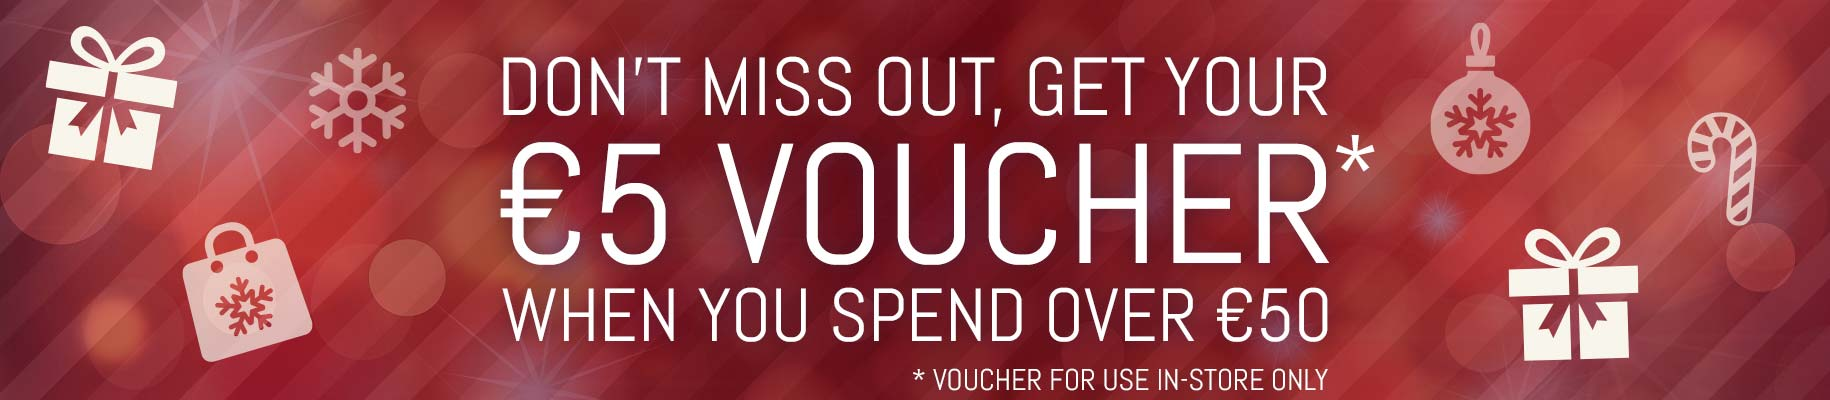 Get a €5 voucher when you spend over €50